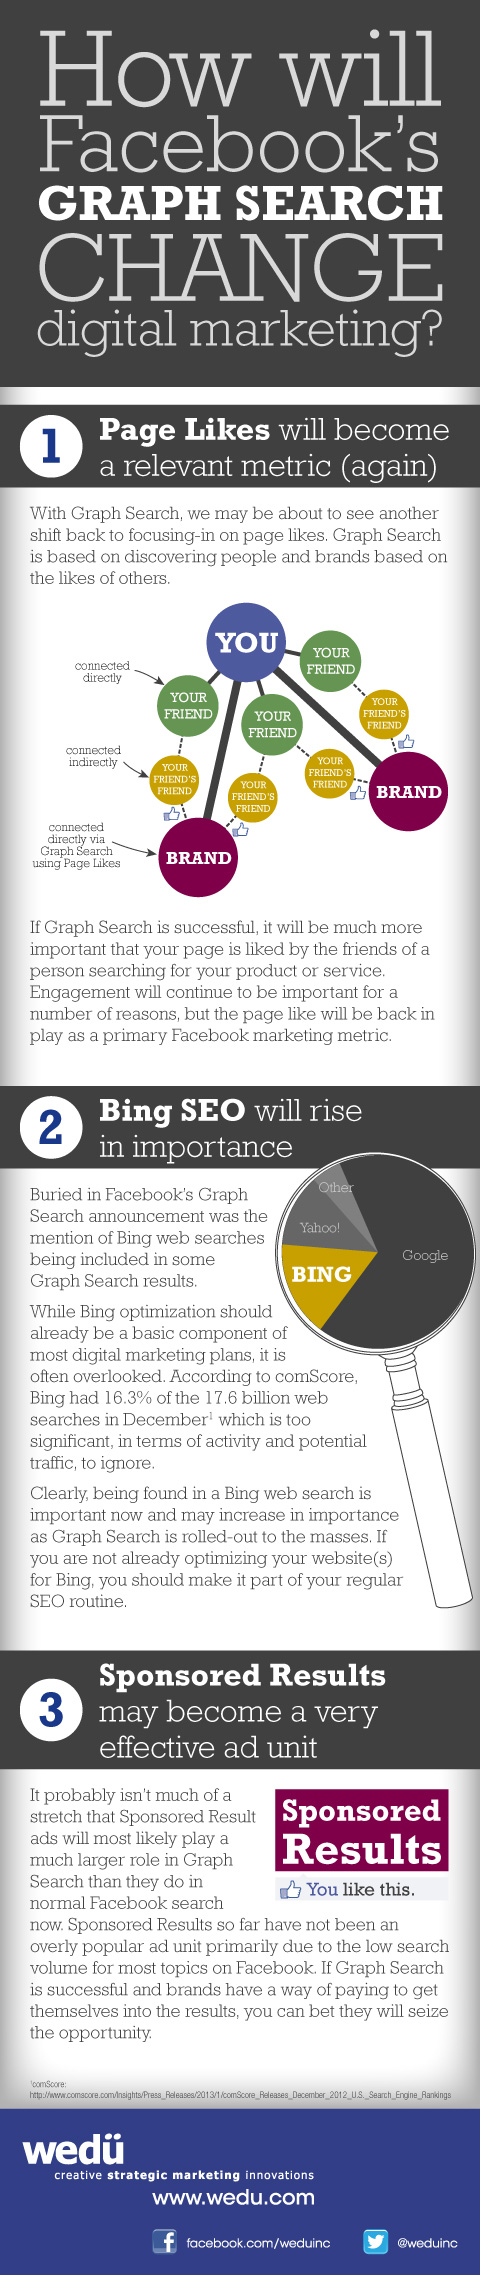 Facebook Graph Search Rumors-Infographic